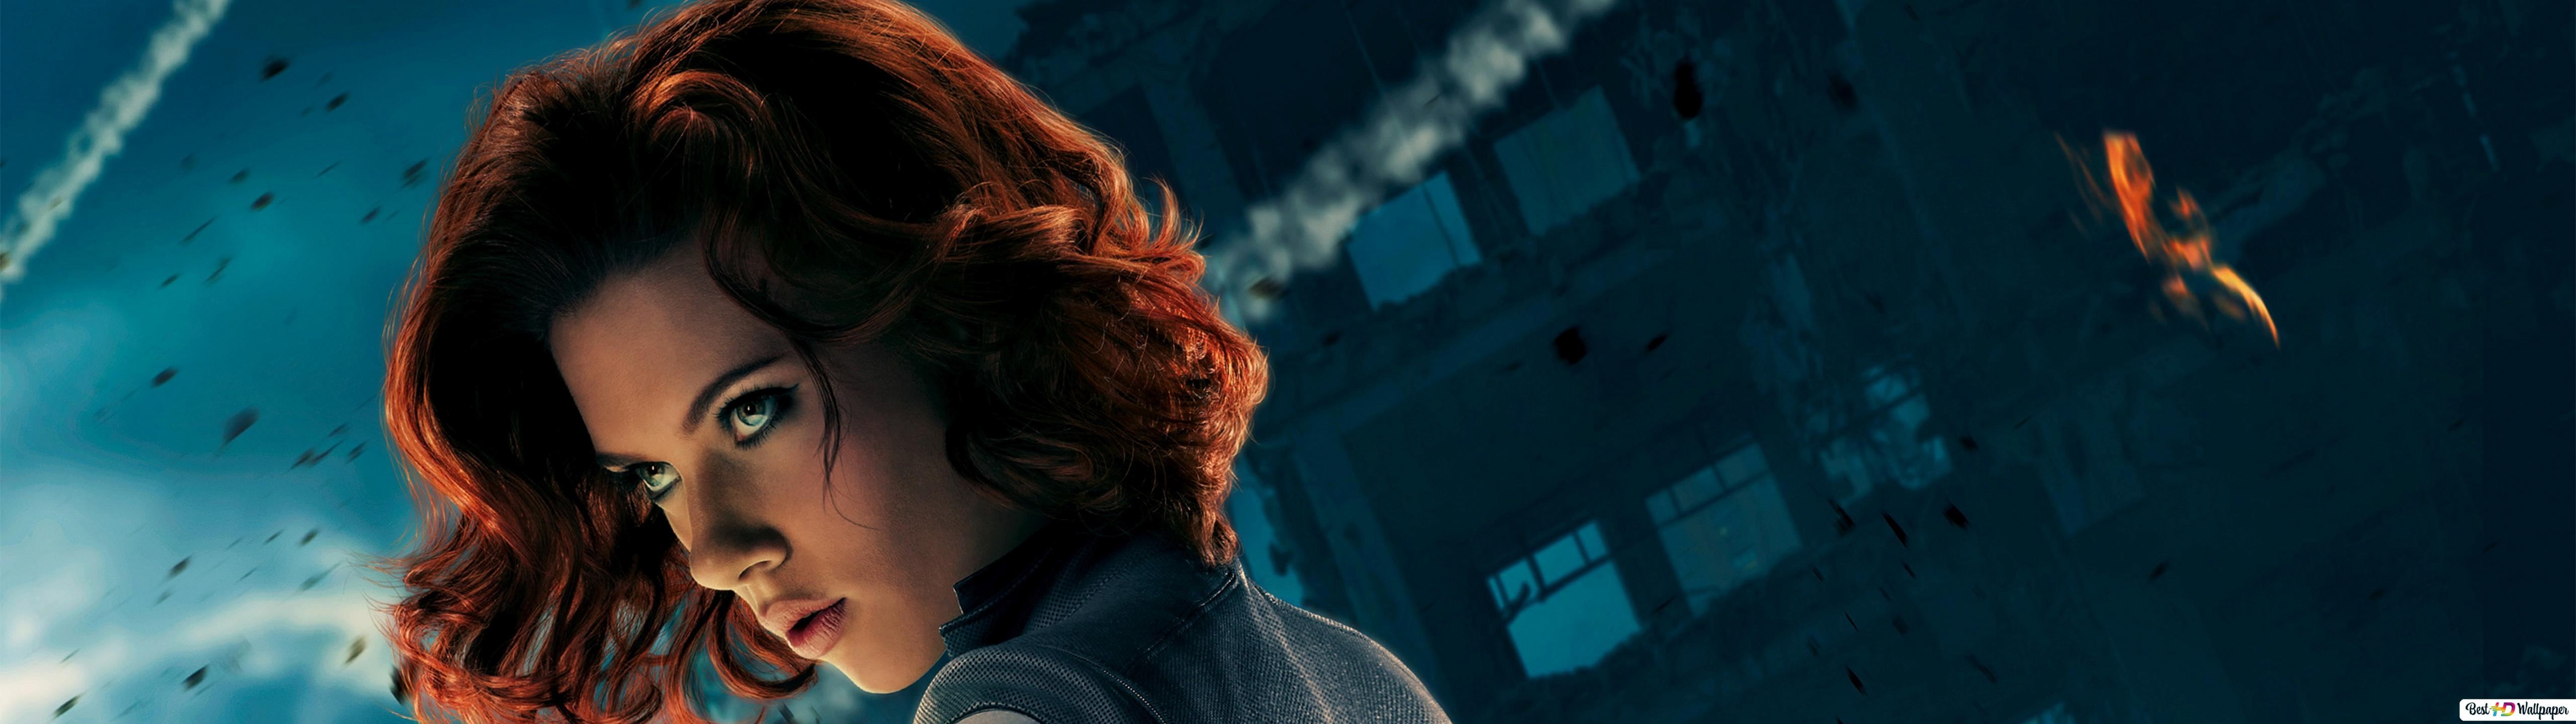 The Black Widow Of The Avengers Hd Wallpaper Download